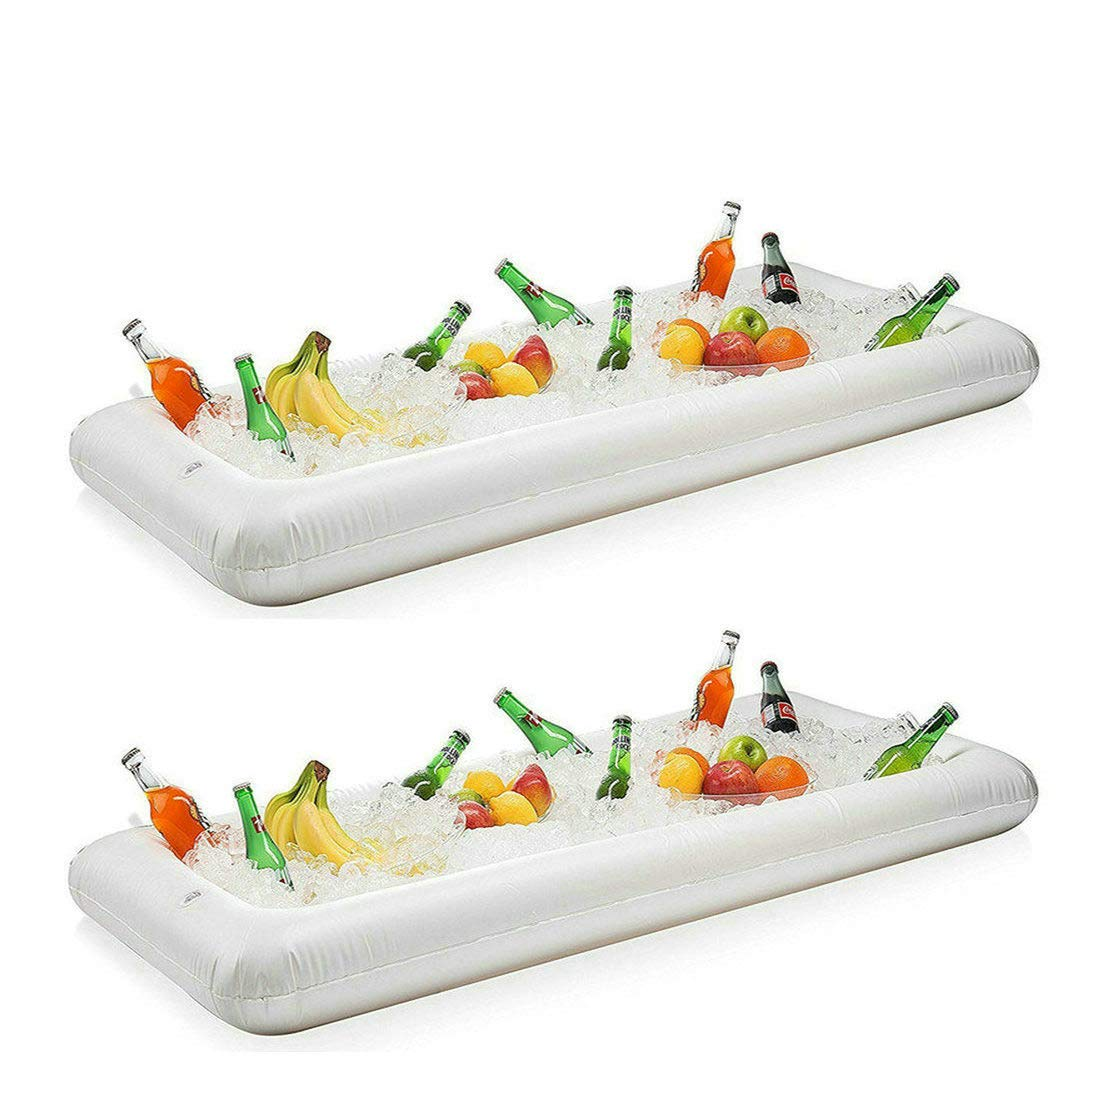 Inflatable Serving Bar Salad Buffet Ice Tray Food Drink Cooler for Picnic Luau Pool Party with Drain Plug, 2 Pack by Funtoys